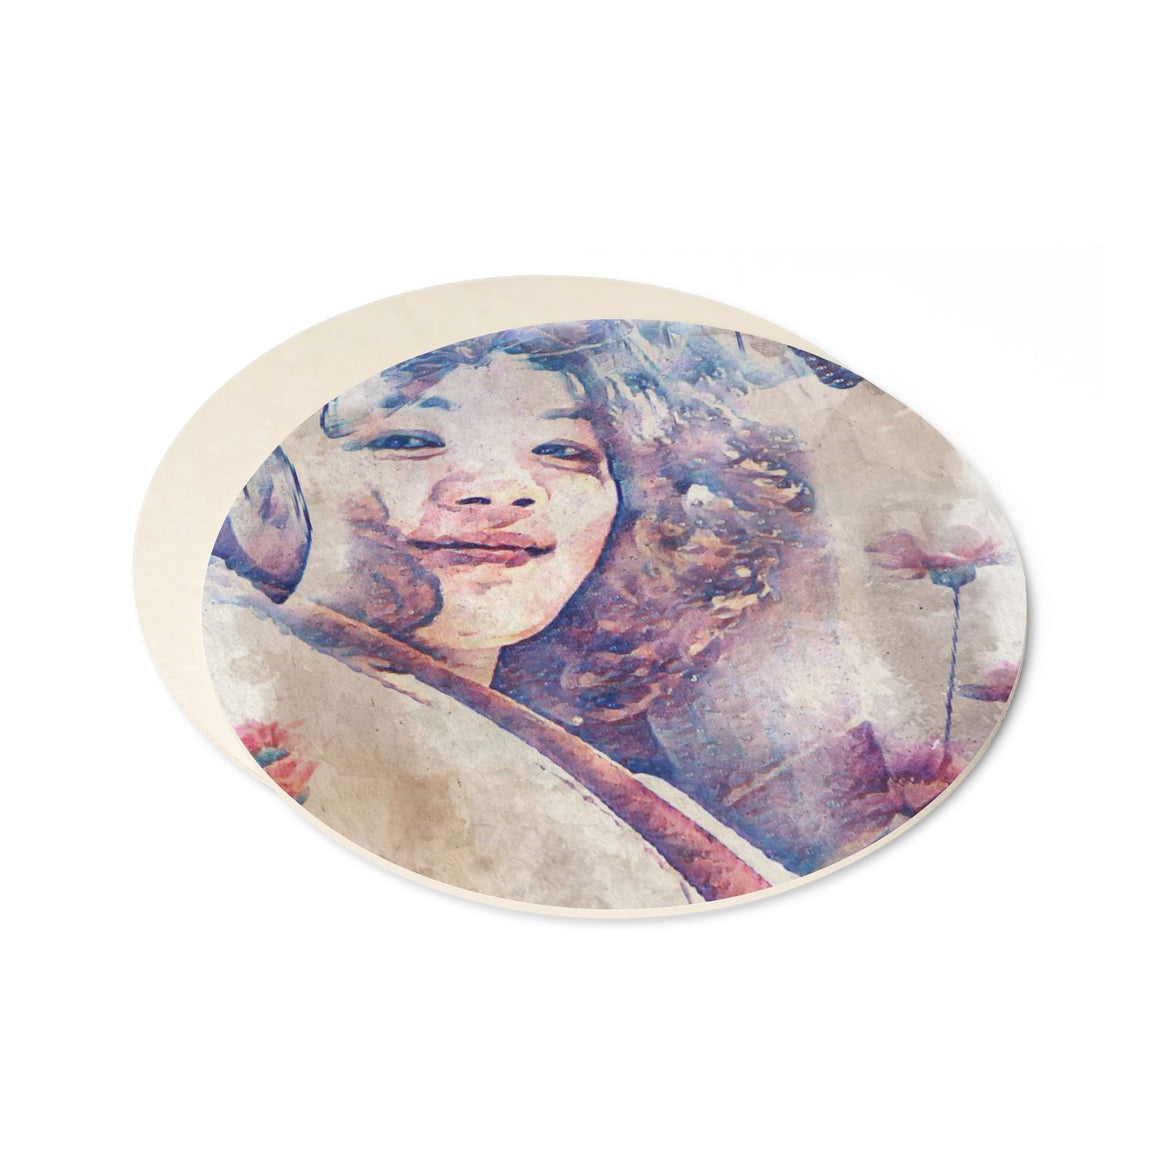 Levi Thang Vintage Face Design V Round Paper Coaster Set - 6pcs